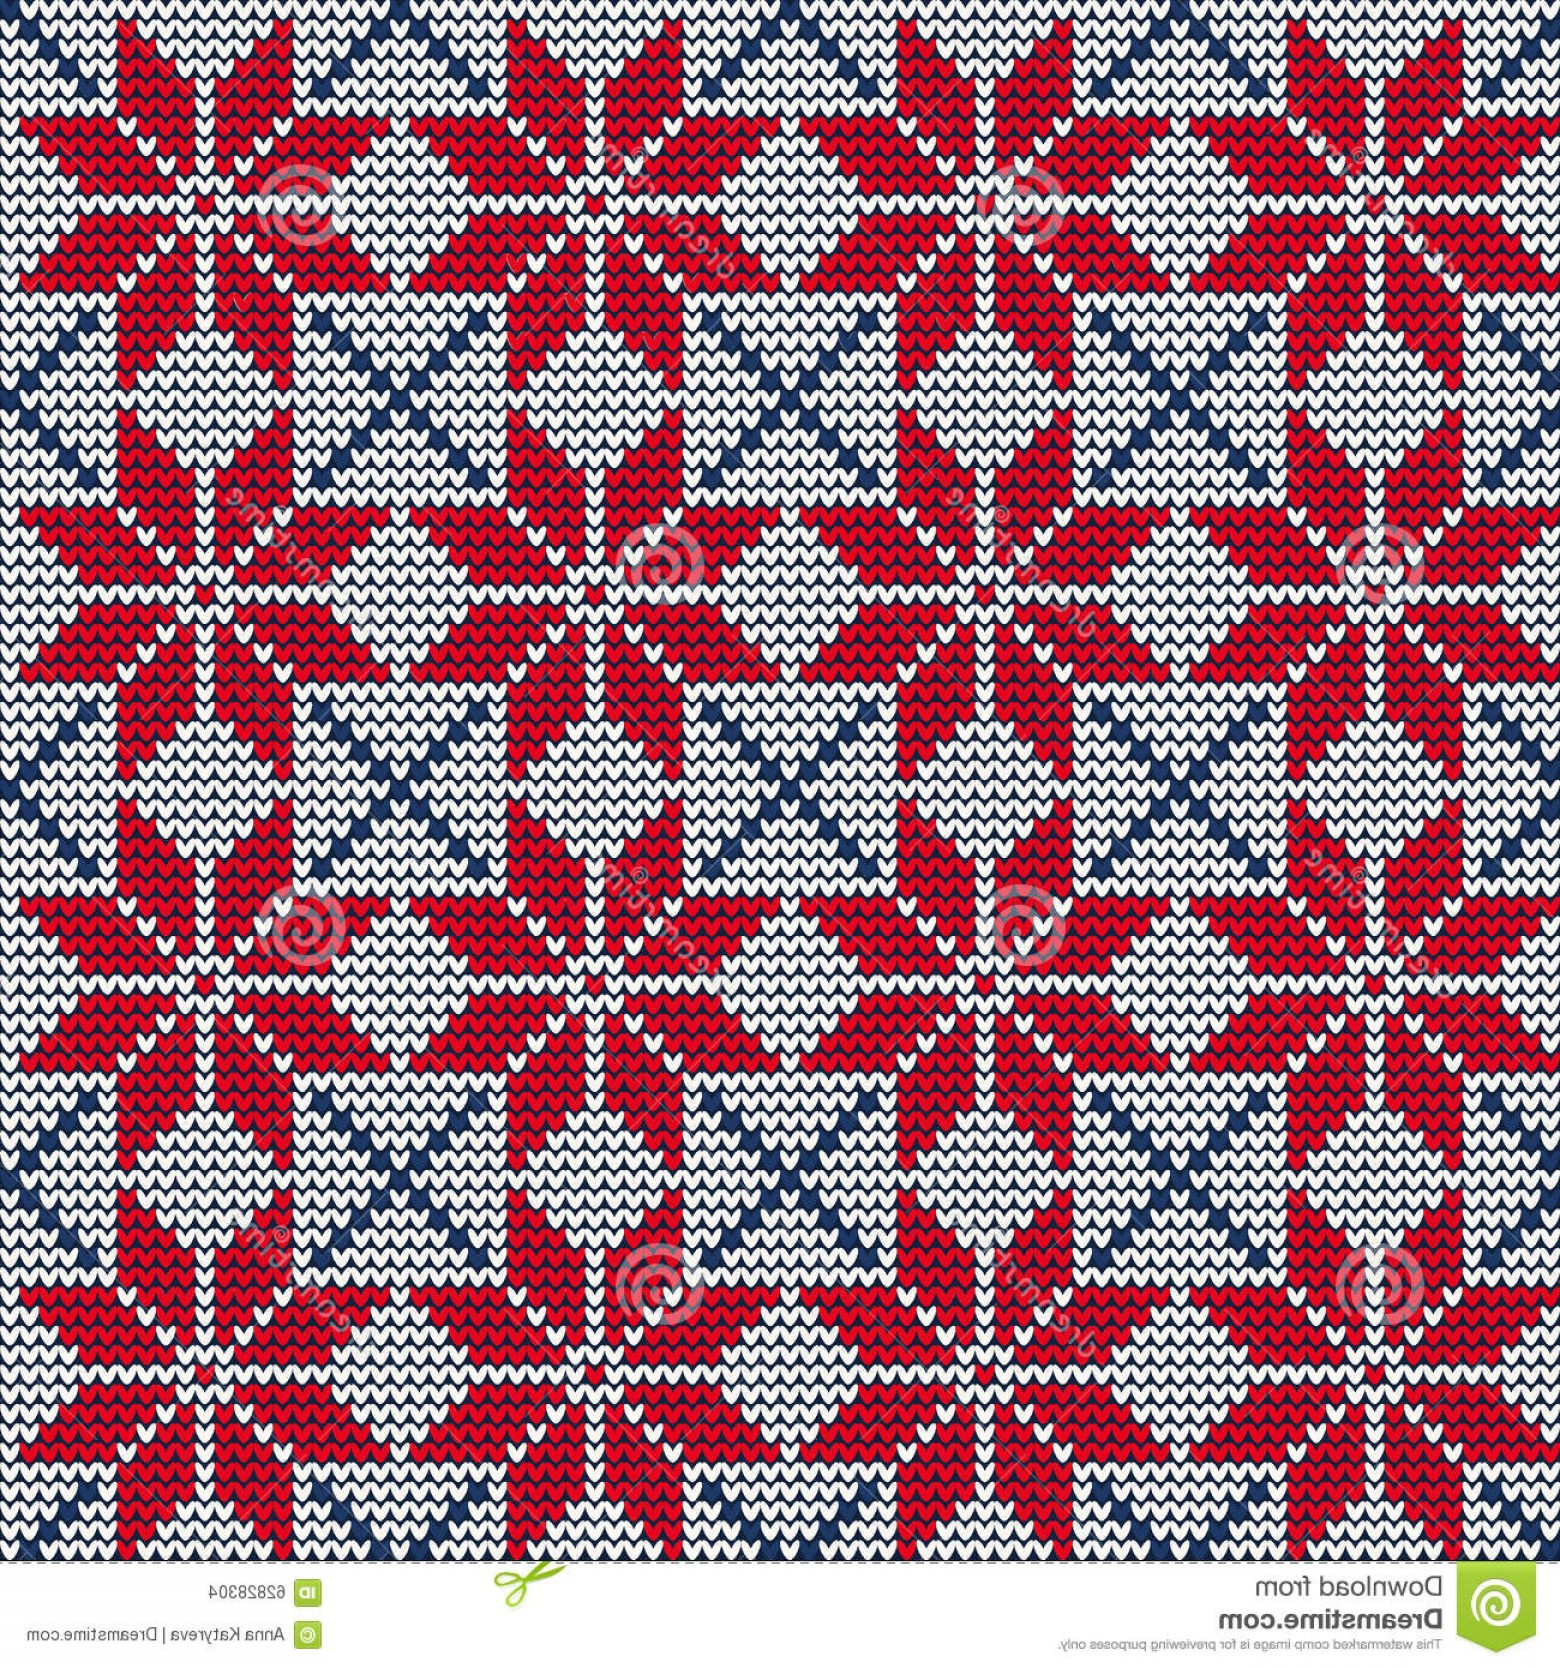 Christmas Sweater Design Vector: Stock Illustration Christmas Ugly Sweater Vector Illustration Design Website Background Banner Holidays Pattern Element Template Image